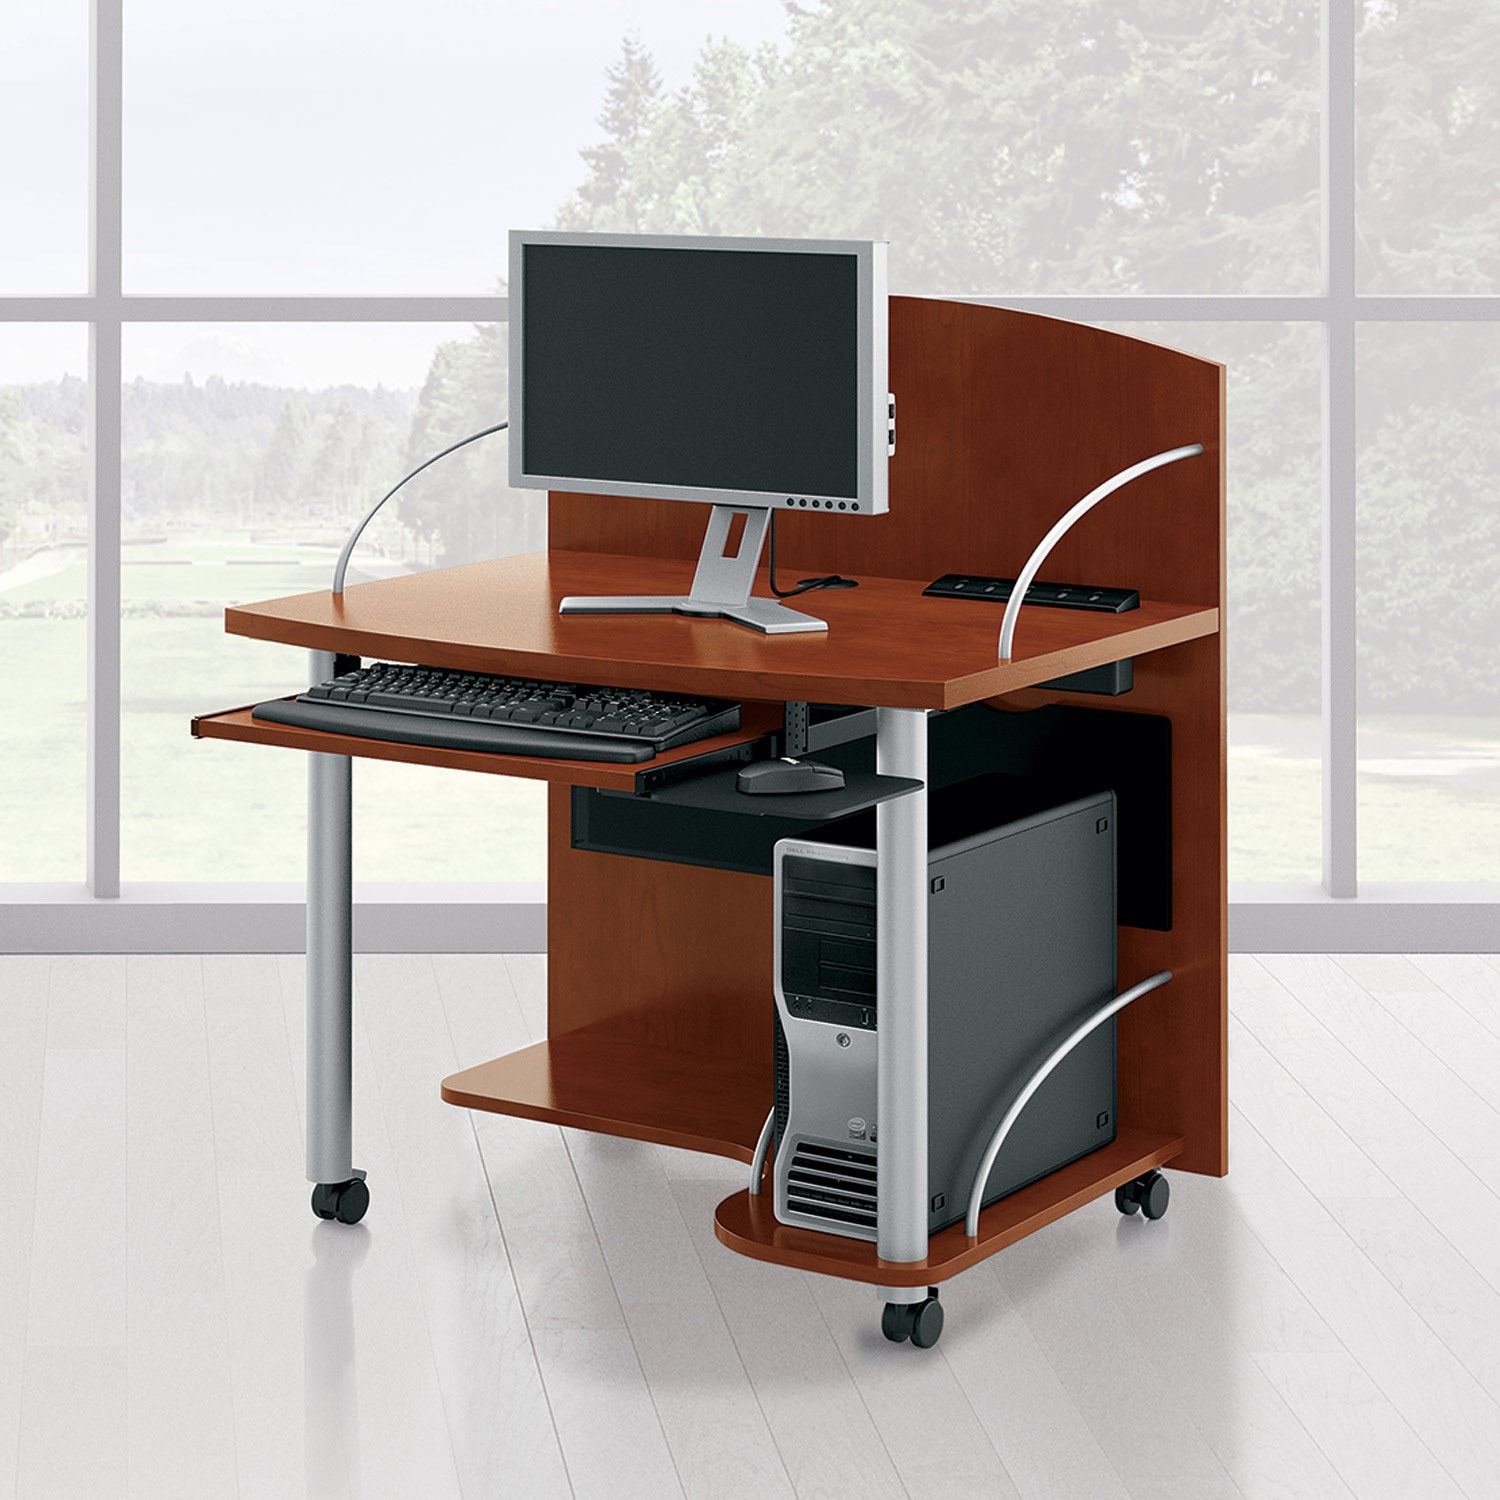 Desktop computer furniture Computer Lab Waveworks Mobile Computer Cart Business Insider Accessories Accents Products National Office Furniture